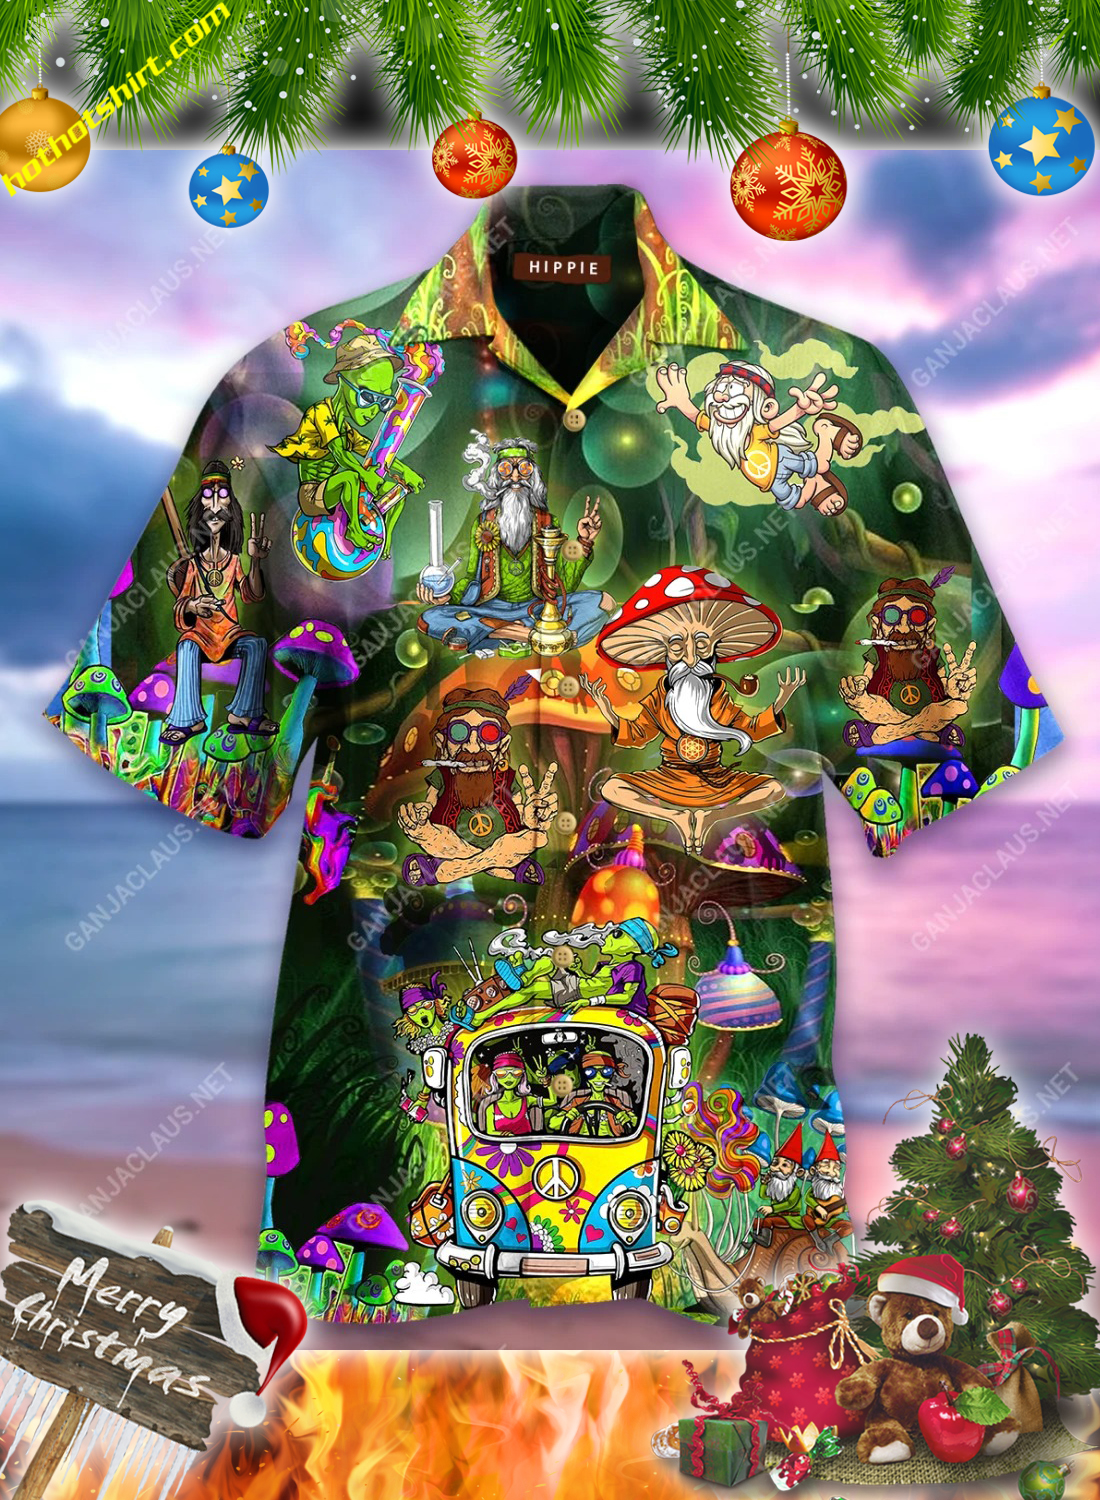 It's A Hippie Thing You Wouldn't Understand hawaiian shirt and short sleeve shirt 1